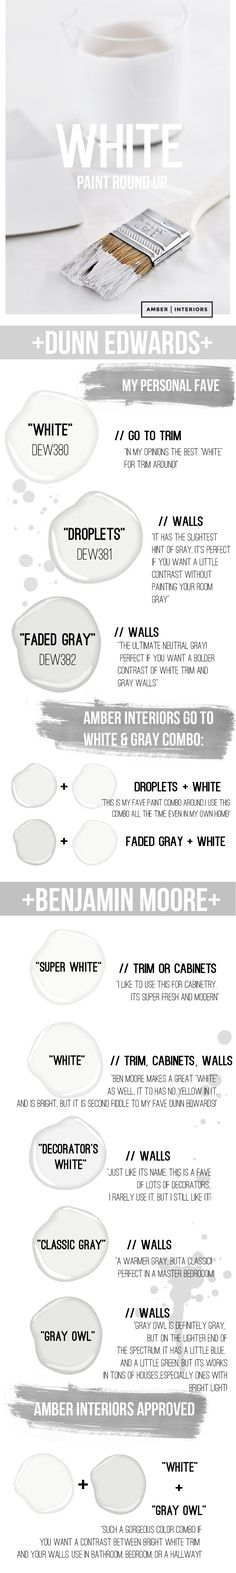 FYI: White Paint round up...